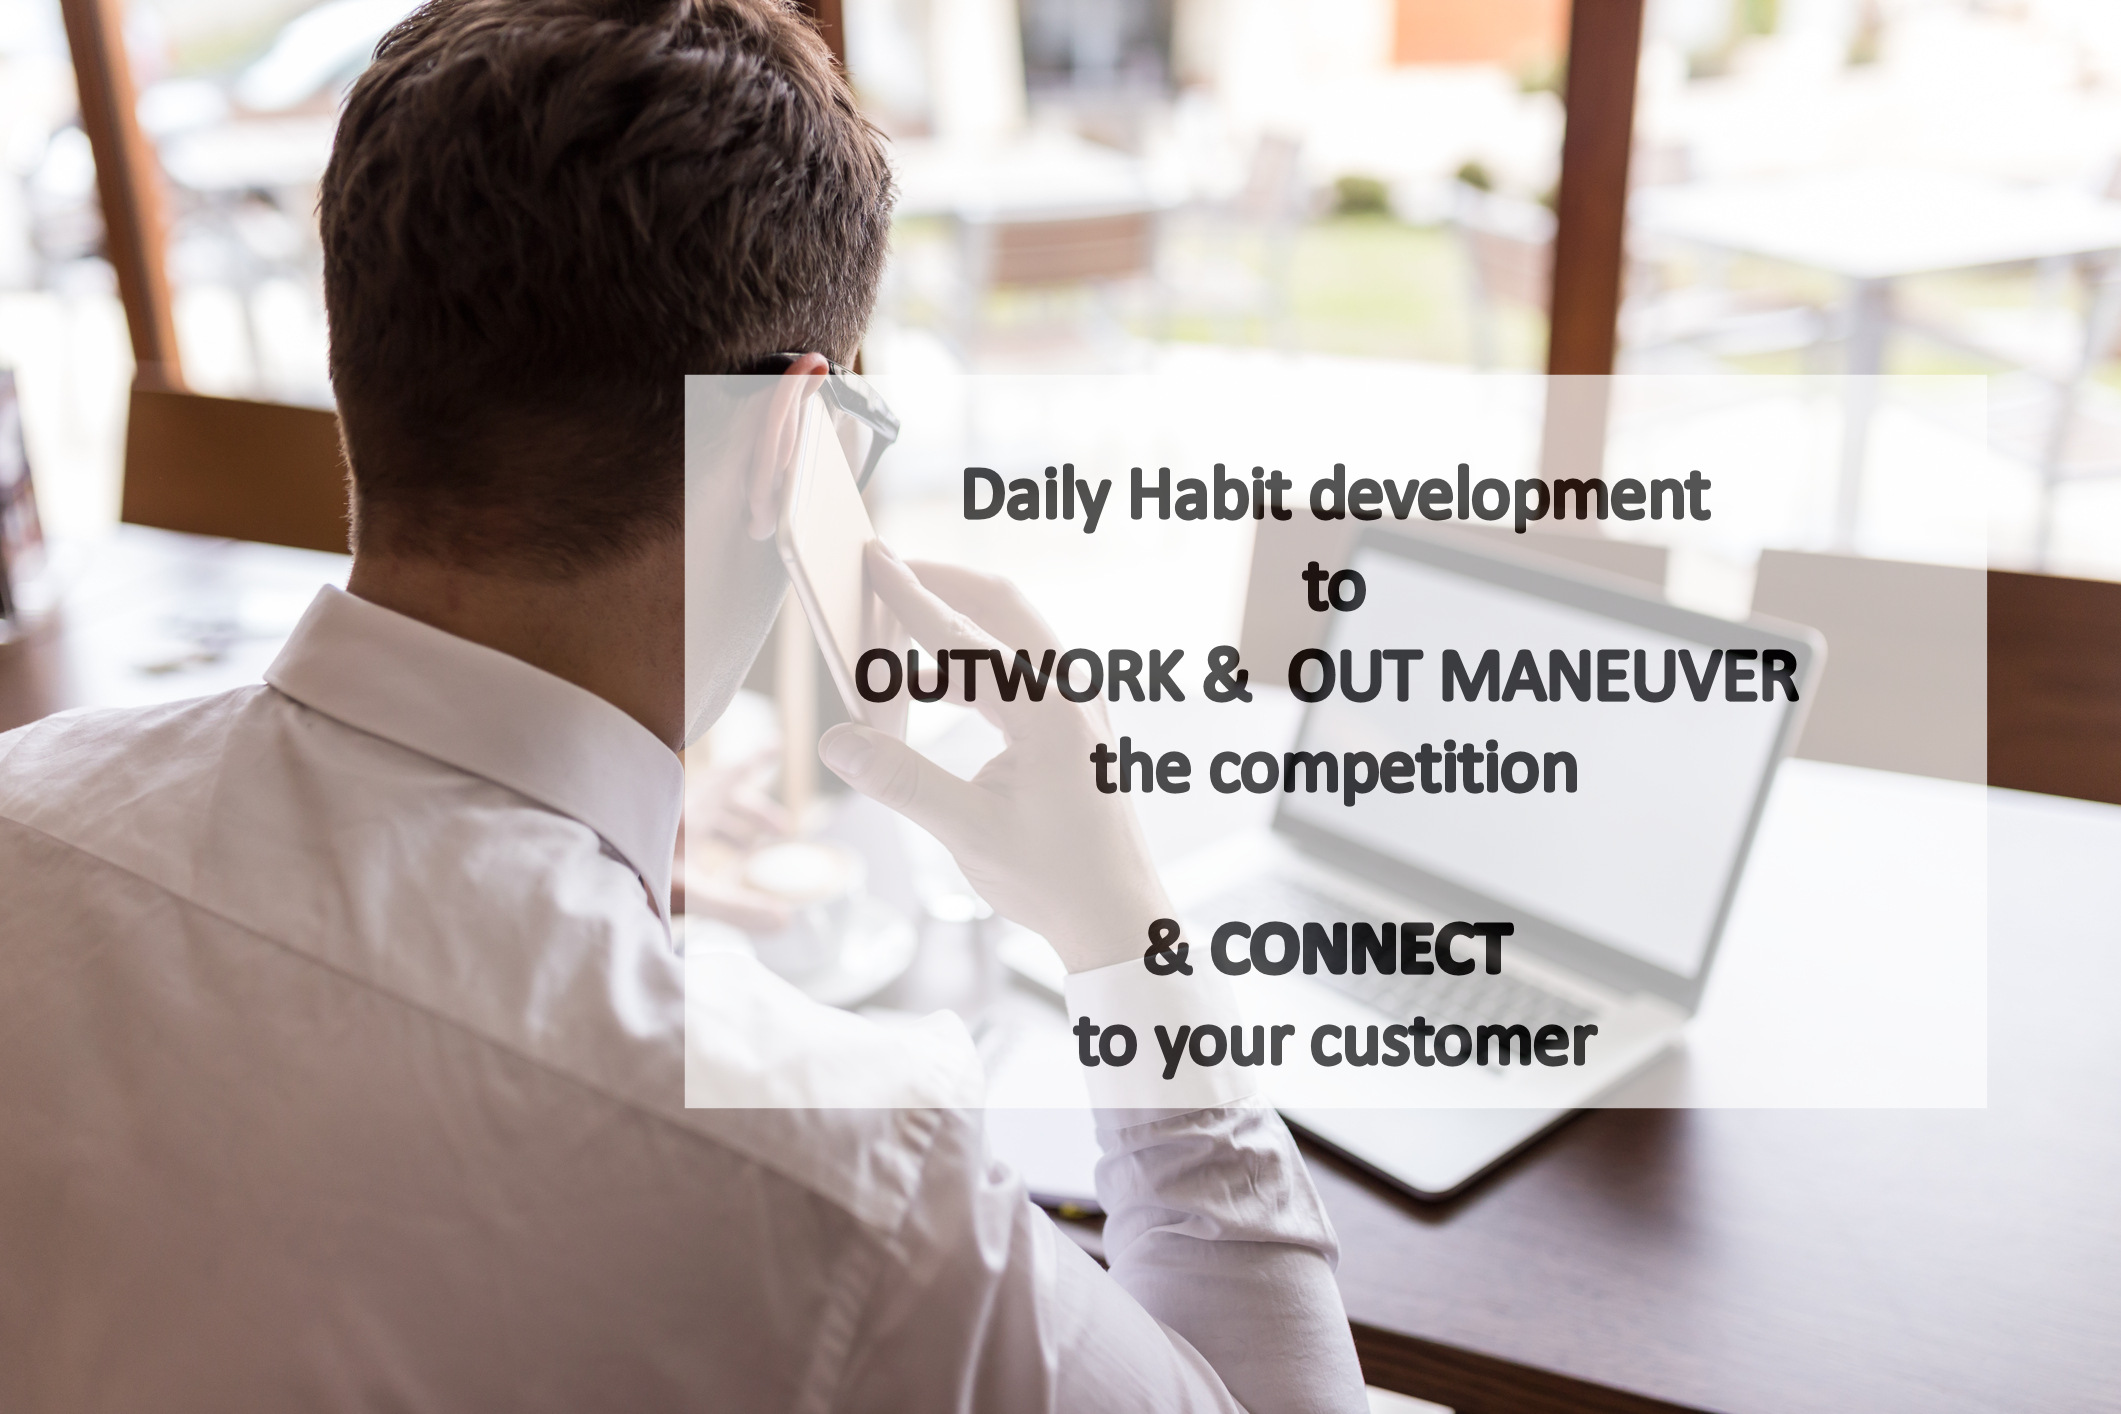 Daily habit development - ybmarketing.jpg